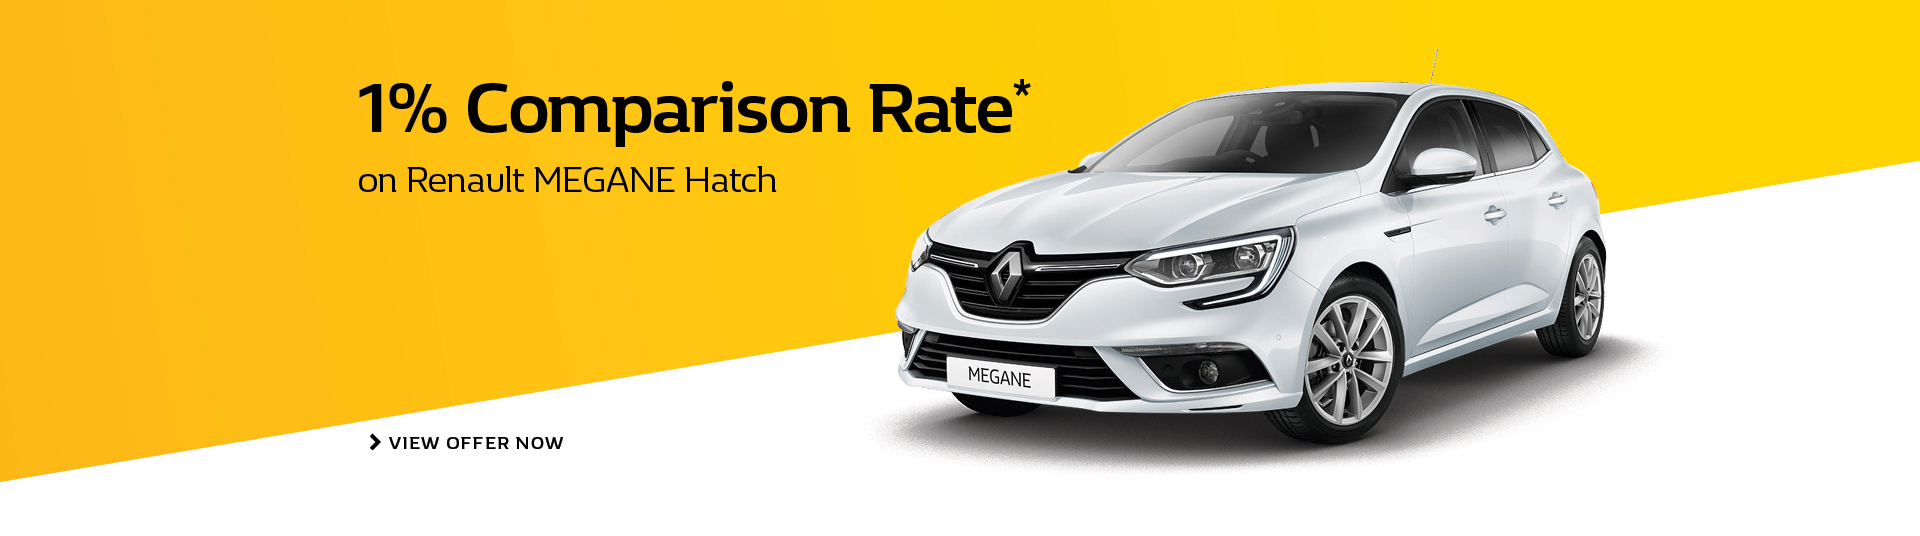 Get 1% comparison rate on Renault Megane hatch at Metro Renault. Conditions apply.